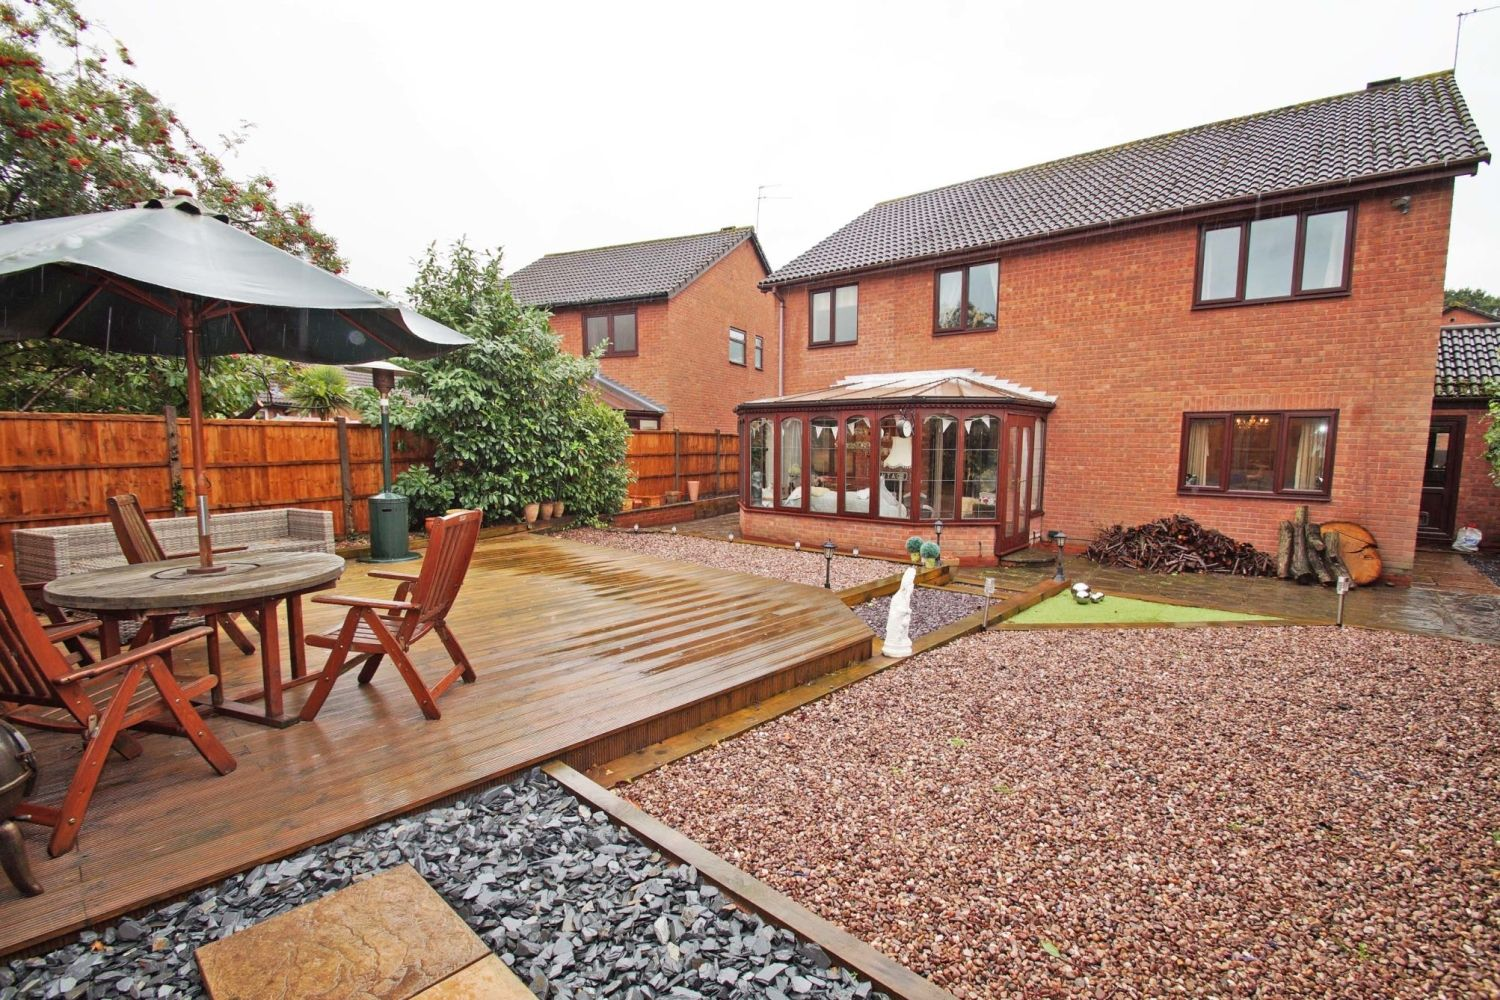 5 bed detached for sale in Melrose Avenue, Oldswinford, Stourbridge 16